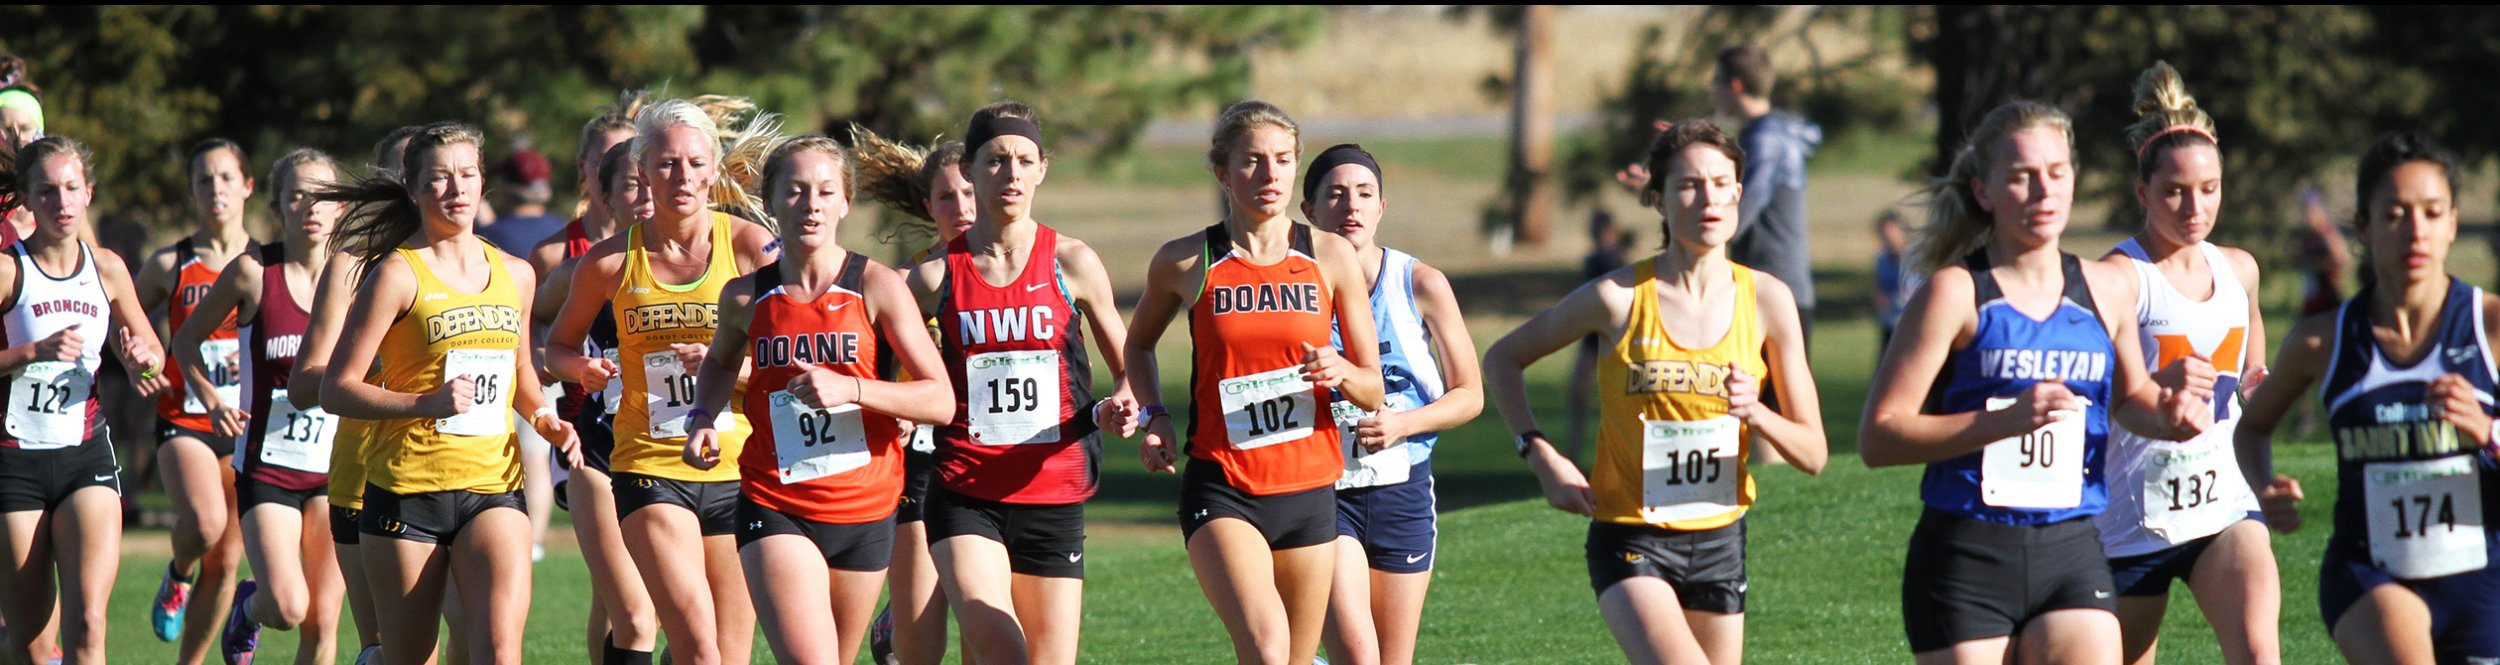 Women's cross country runners run in a pack.